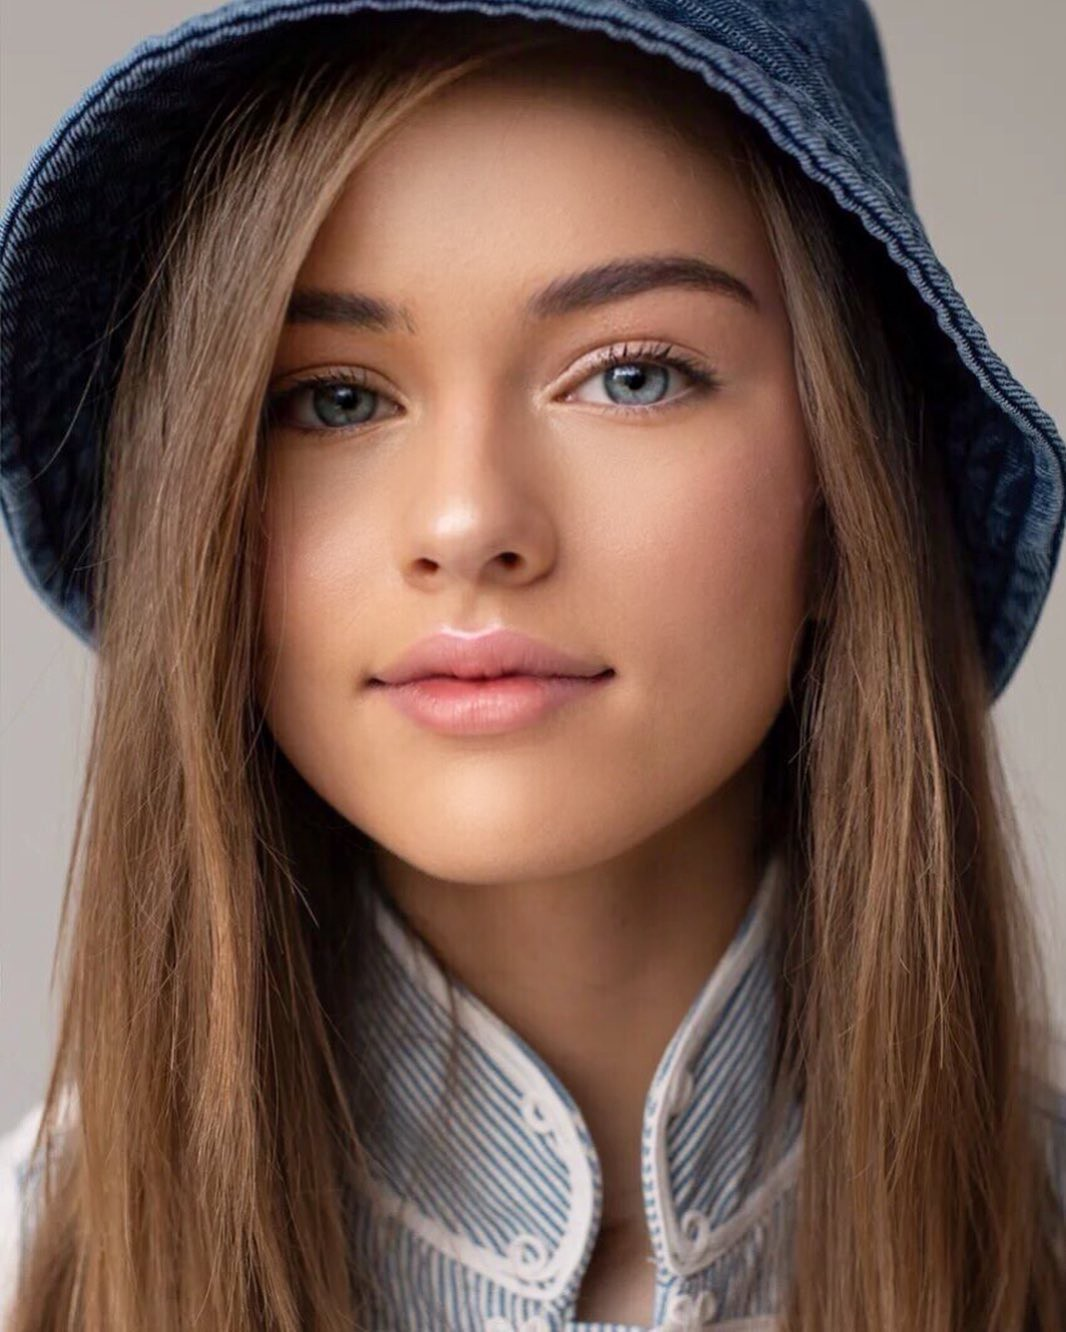 Kristina Pimenova Girls With Cute Face, Lips Smile, Simple Hairstyle